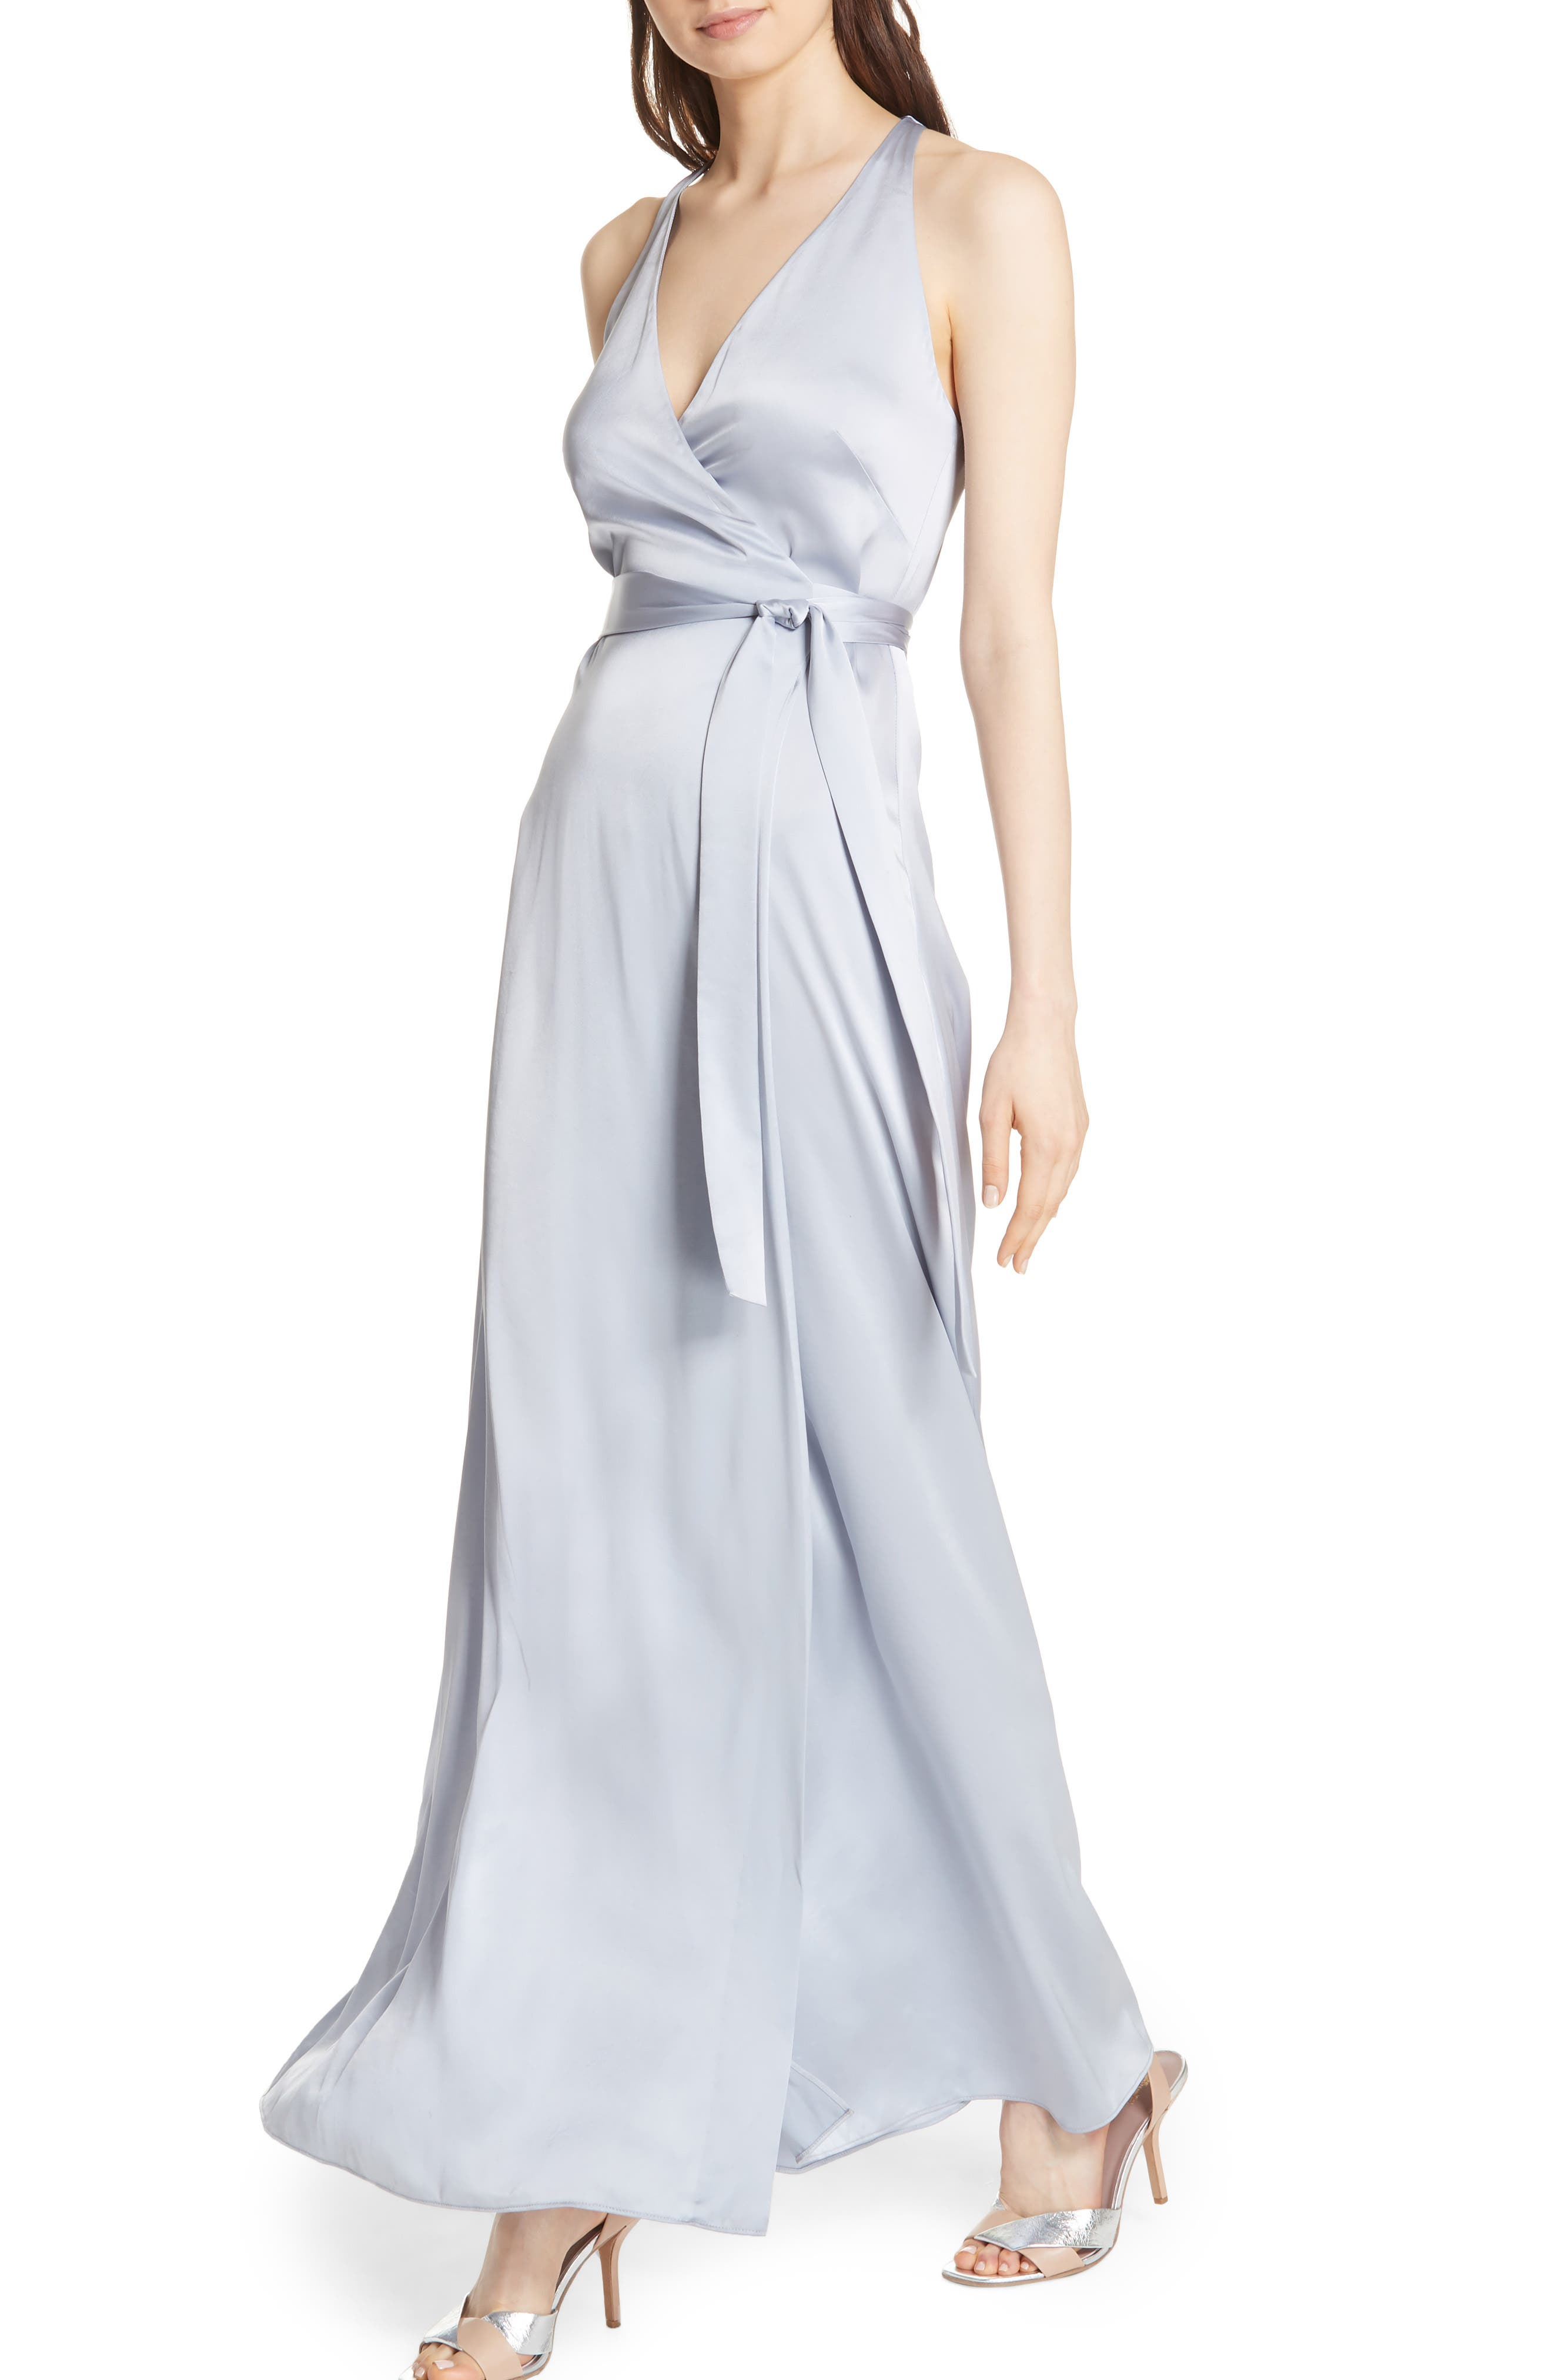 Diane von Furstenberg Wrap Gown,                             Alternate thumbnail 4, color,                             Smoke